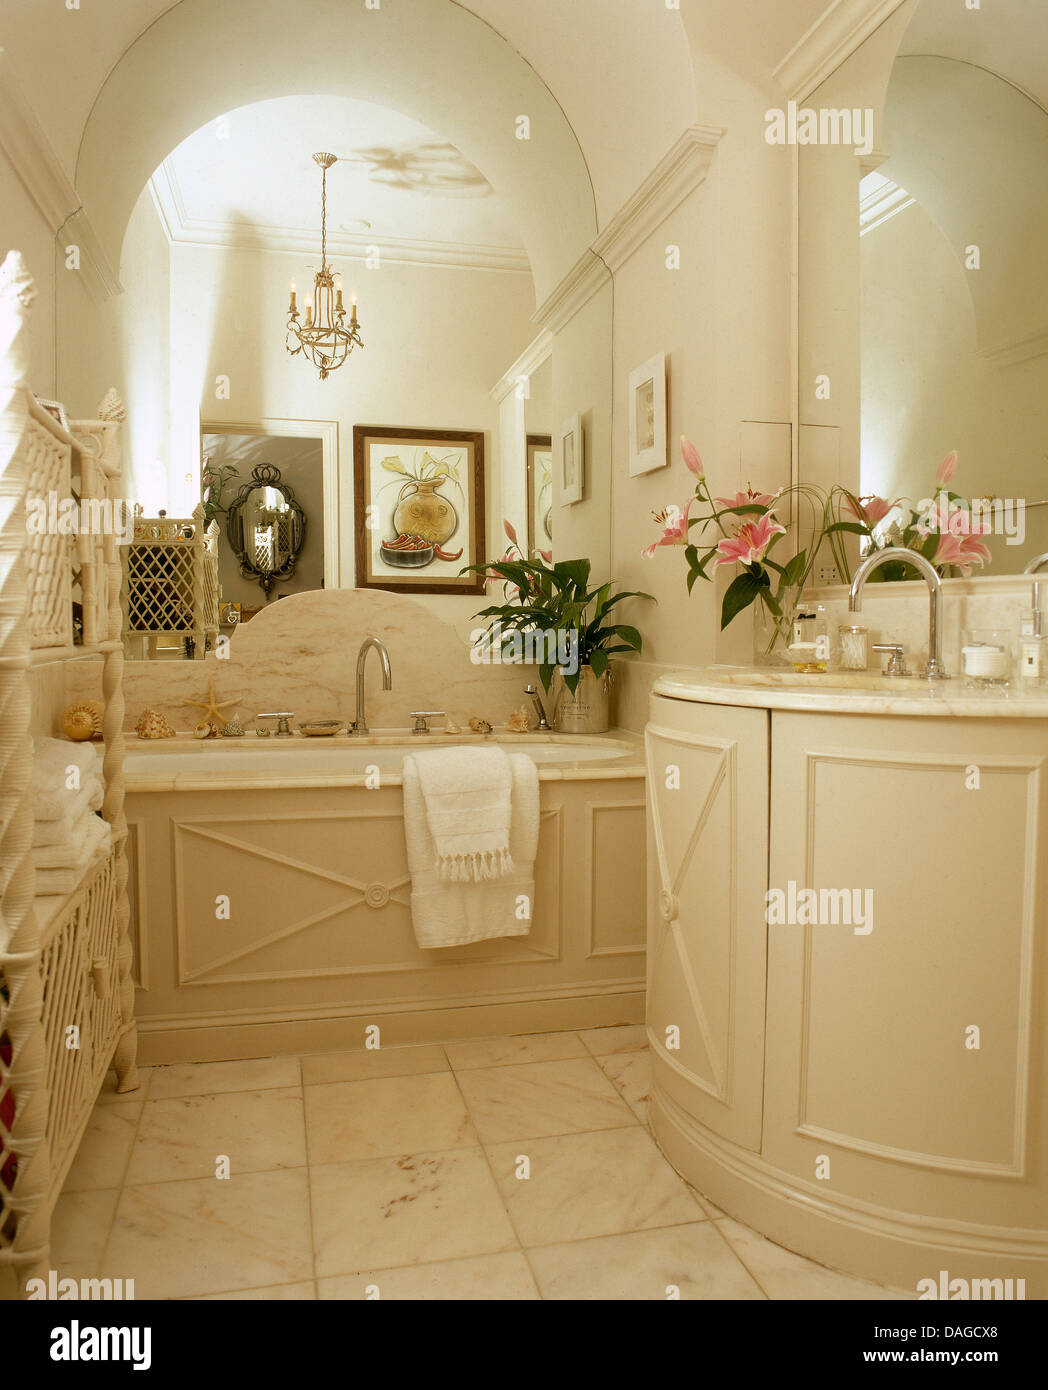 Basin In Curved Vanity Unit In Cream Town House Bathroom With Mirrored Wall  Above Panelled Bath